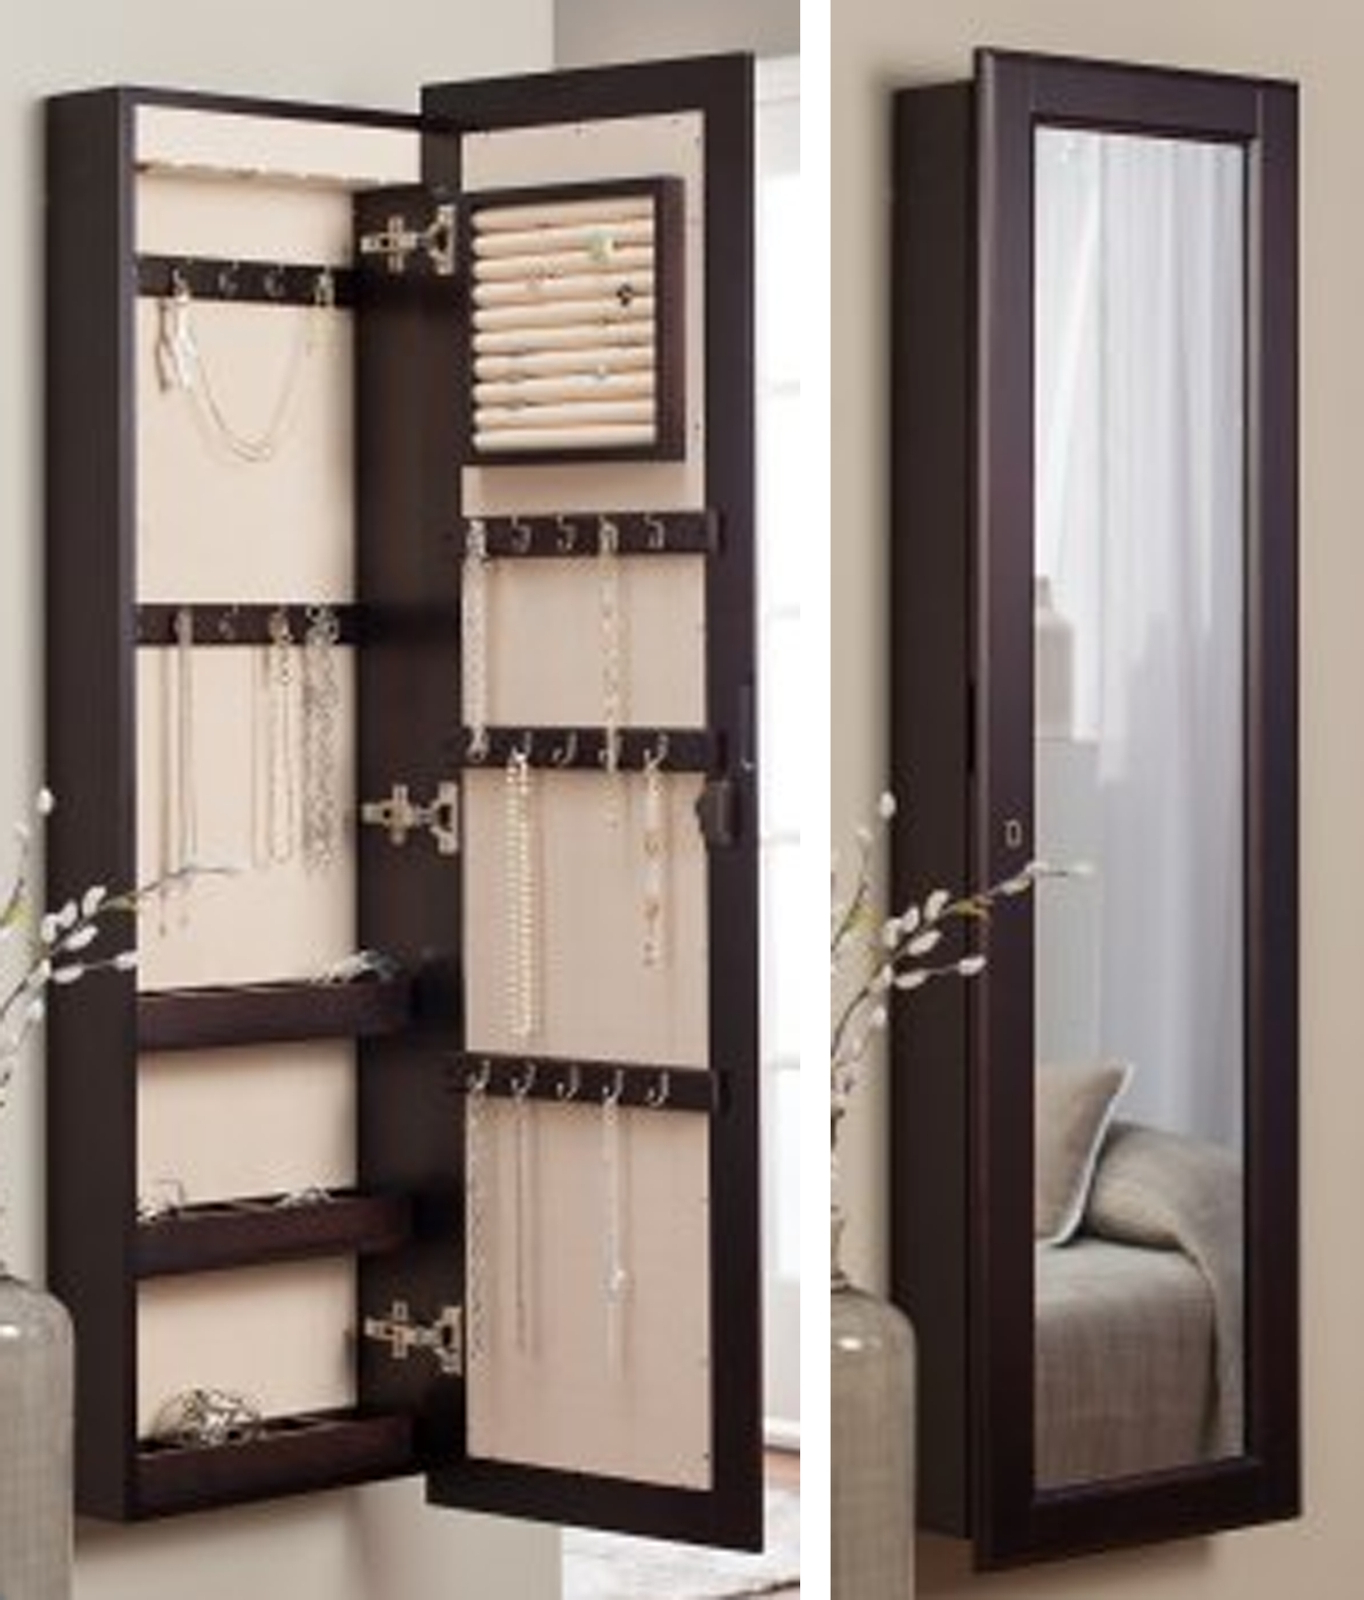 Wall Hanging Mirror Jewelry Box • Bathroom Mirrors And Wall Mirrors Inside Fashionable Jewelry Wall Mirrors (View 14 of 20)